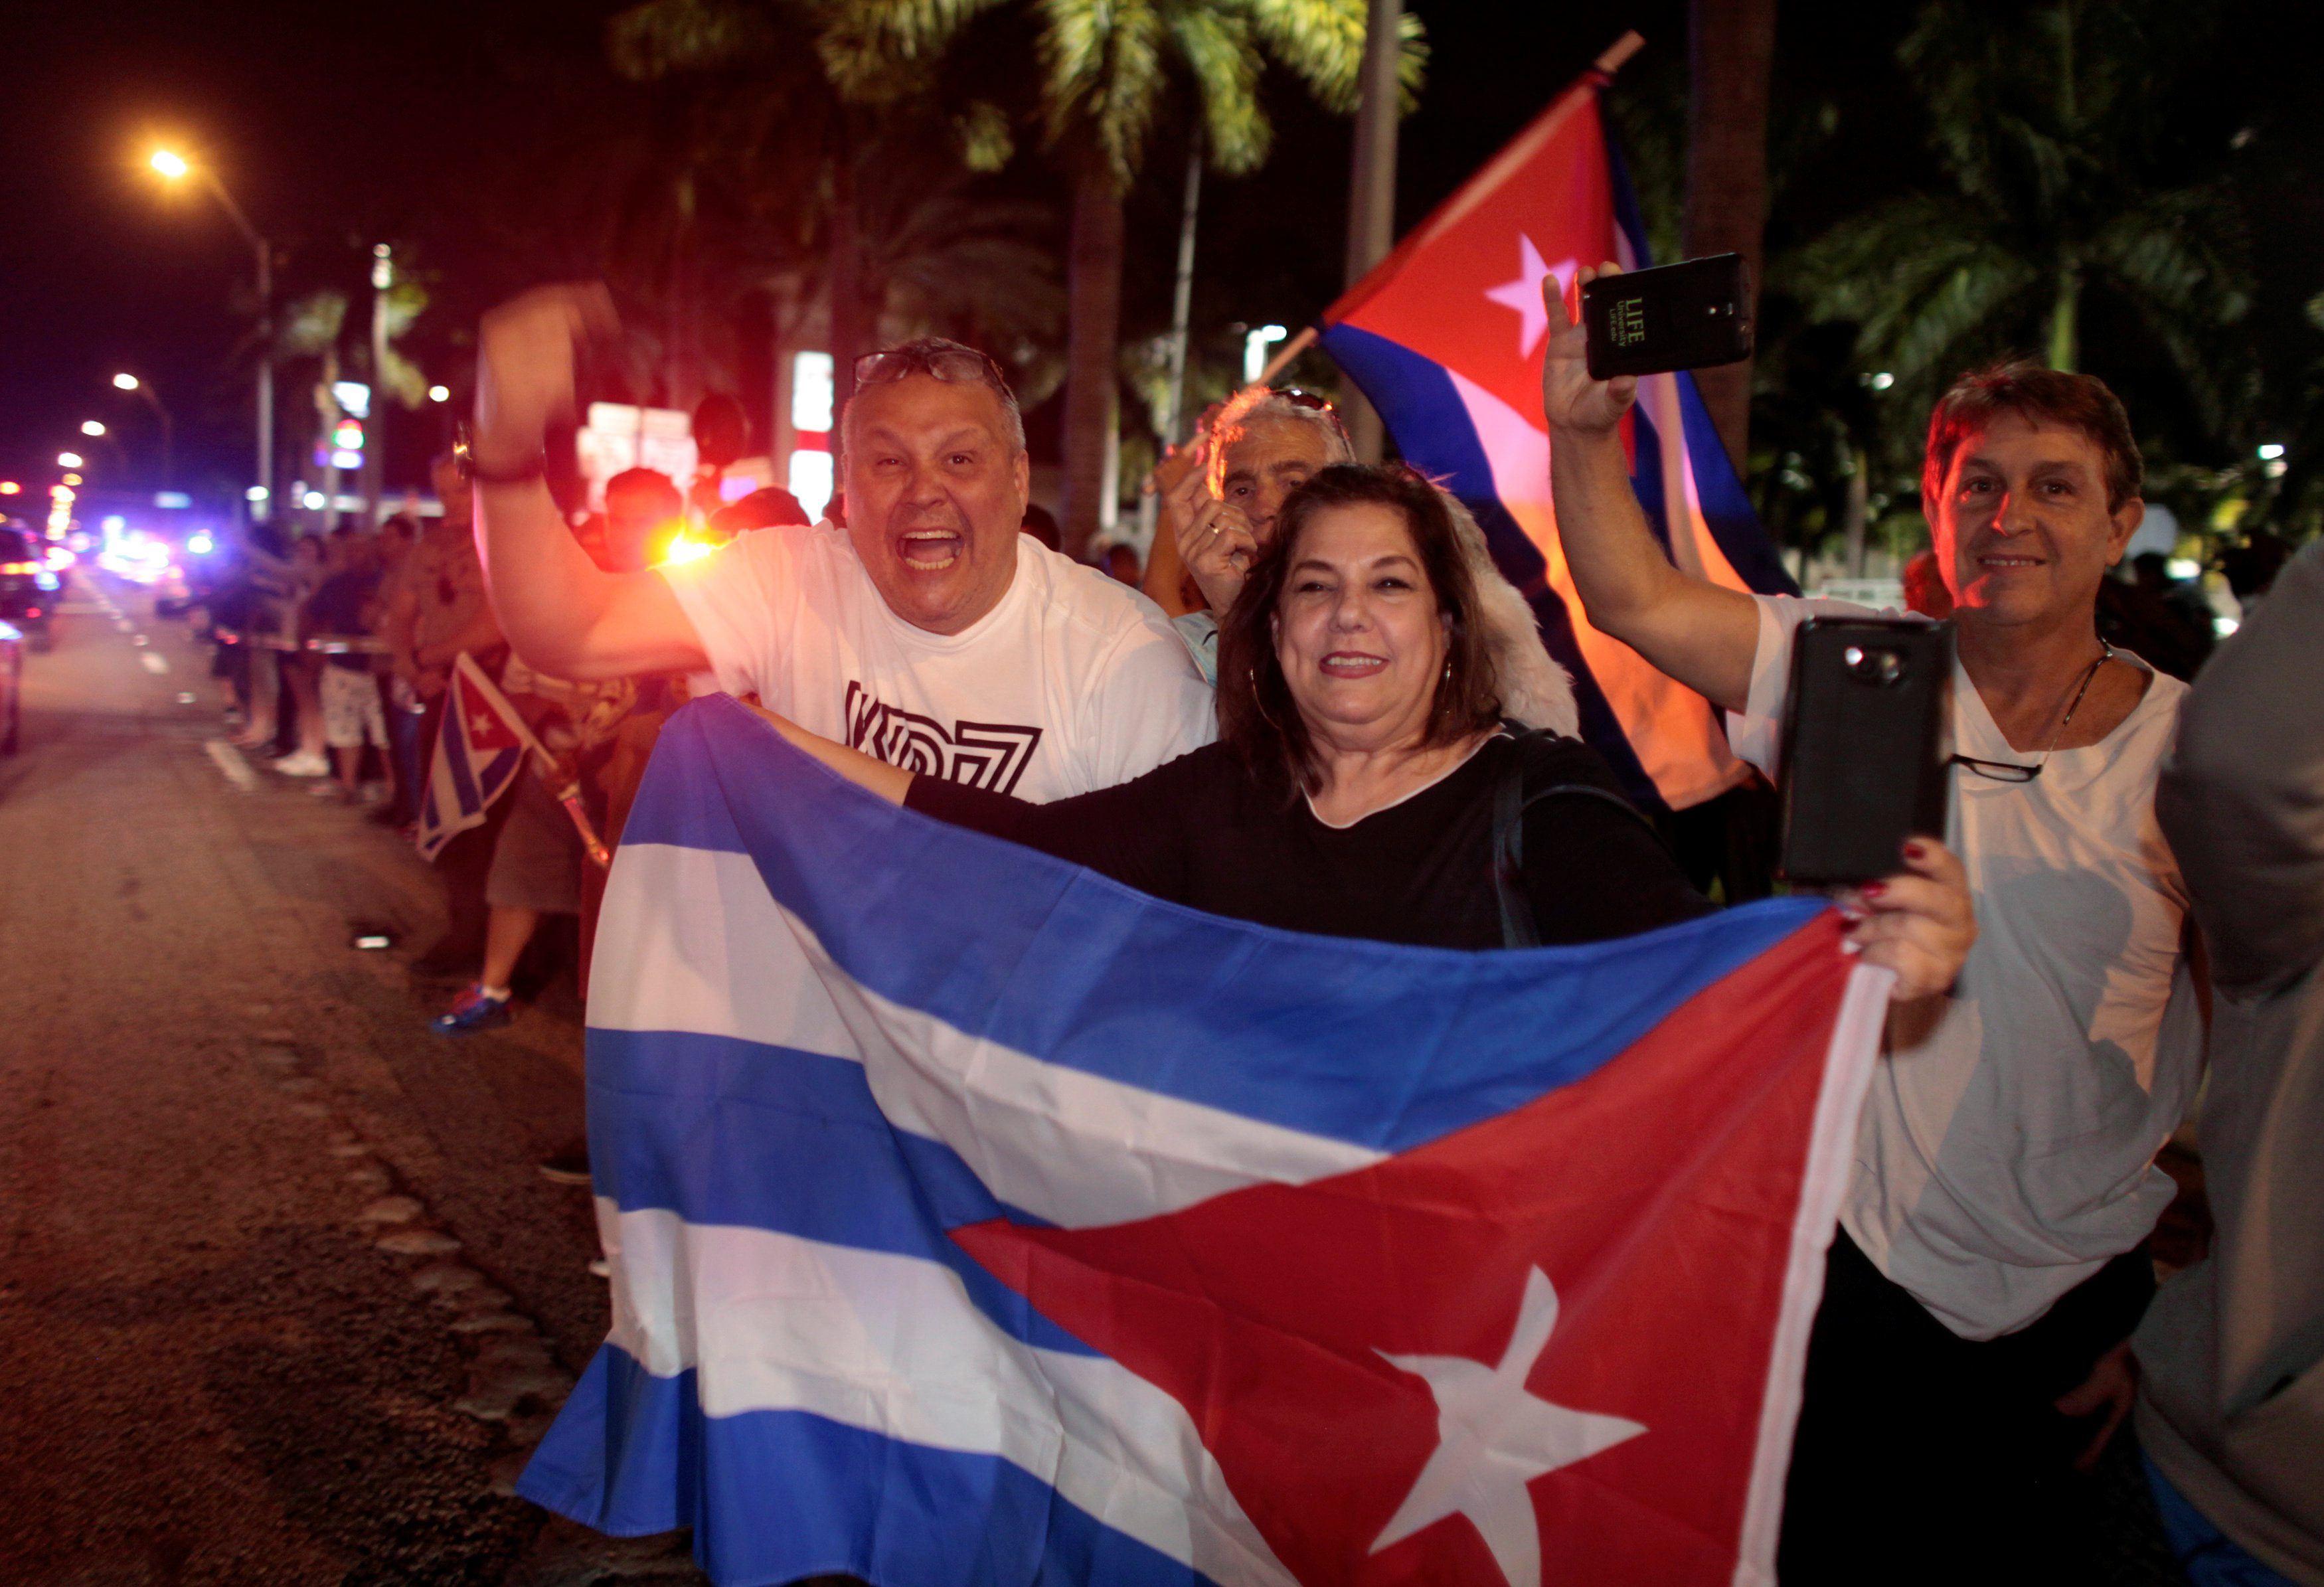 People celebrate after the announcement of the death of Cuban revolutionary leader Fidel Castro, in the Little Havana district of Miami, Florida, U.S. November 26, 2016. REUTERS/Javier Galeano